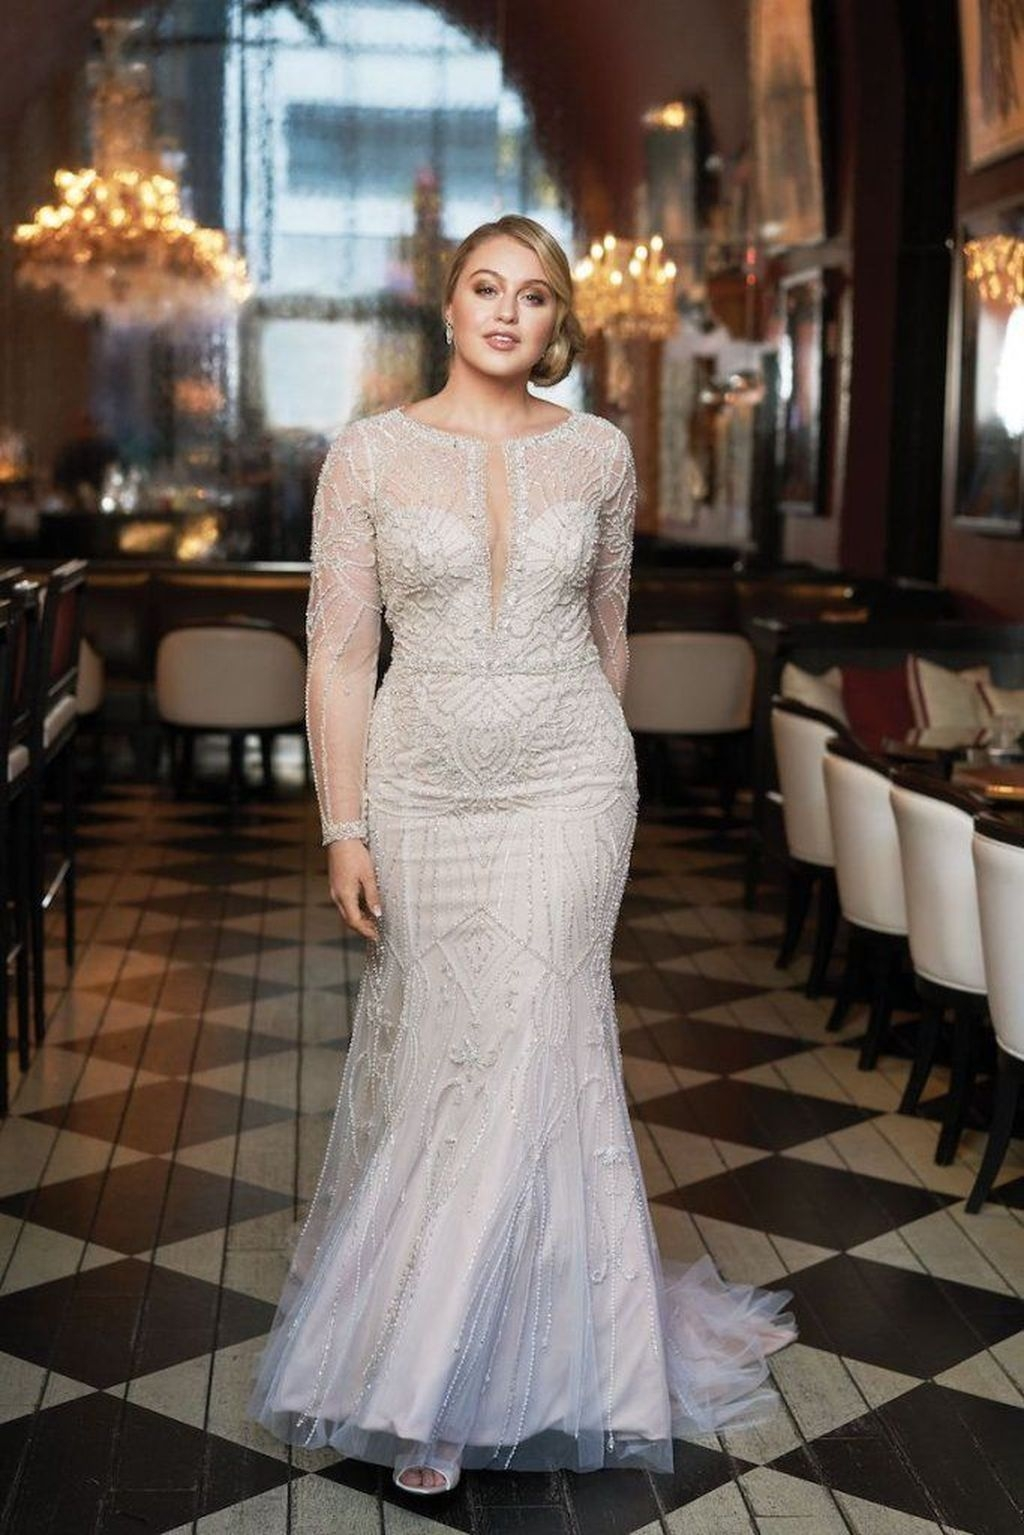 Impressive Wedding Dresses Ideas That Are Perfect For Curvy Brides26